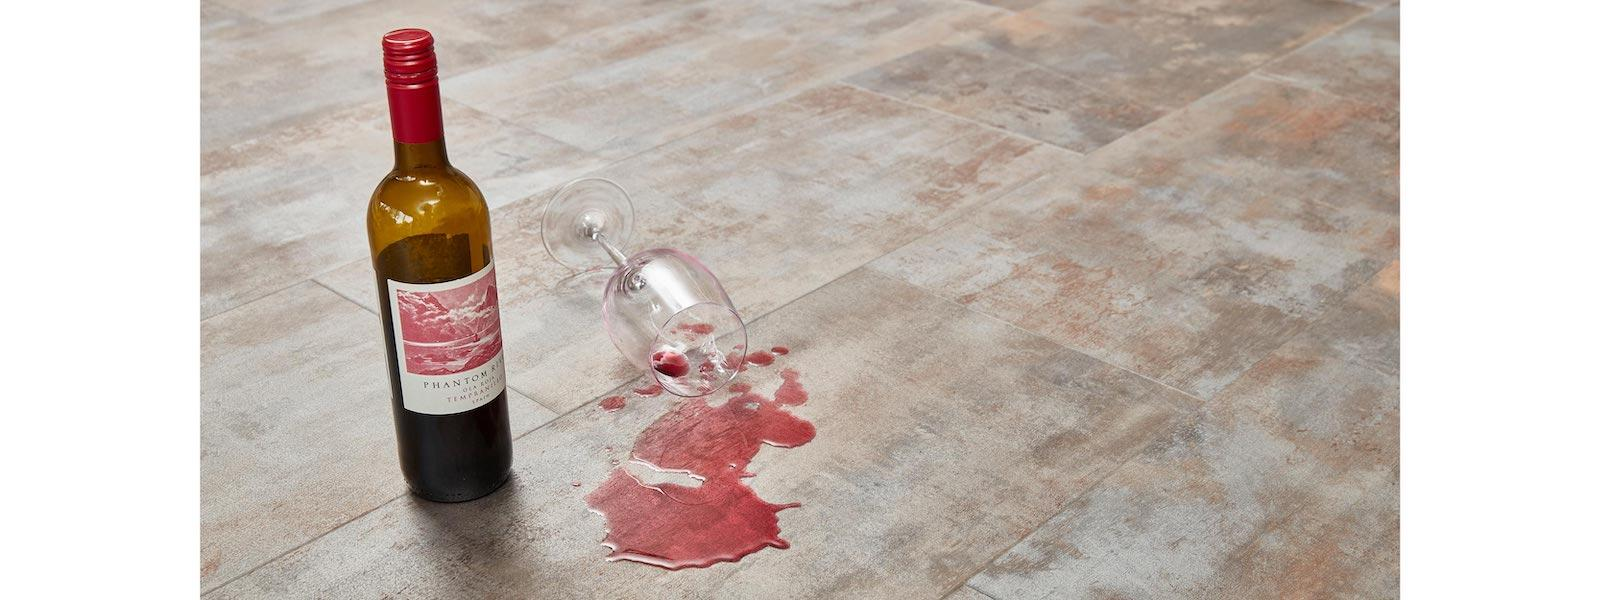 wine bottle and spilled glass